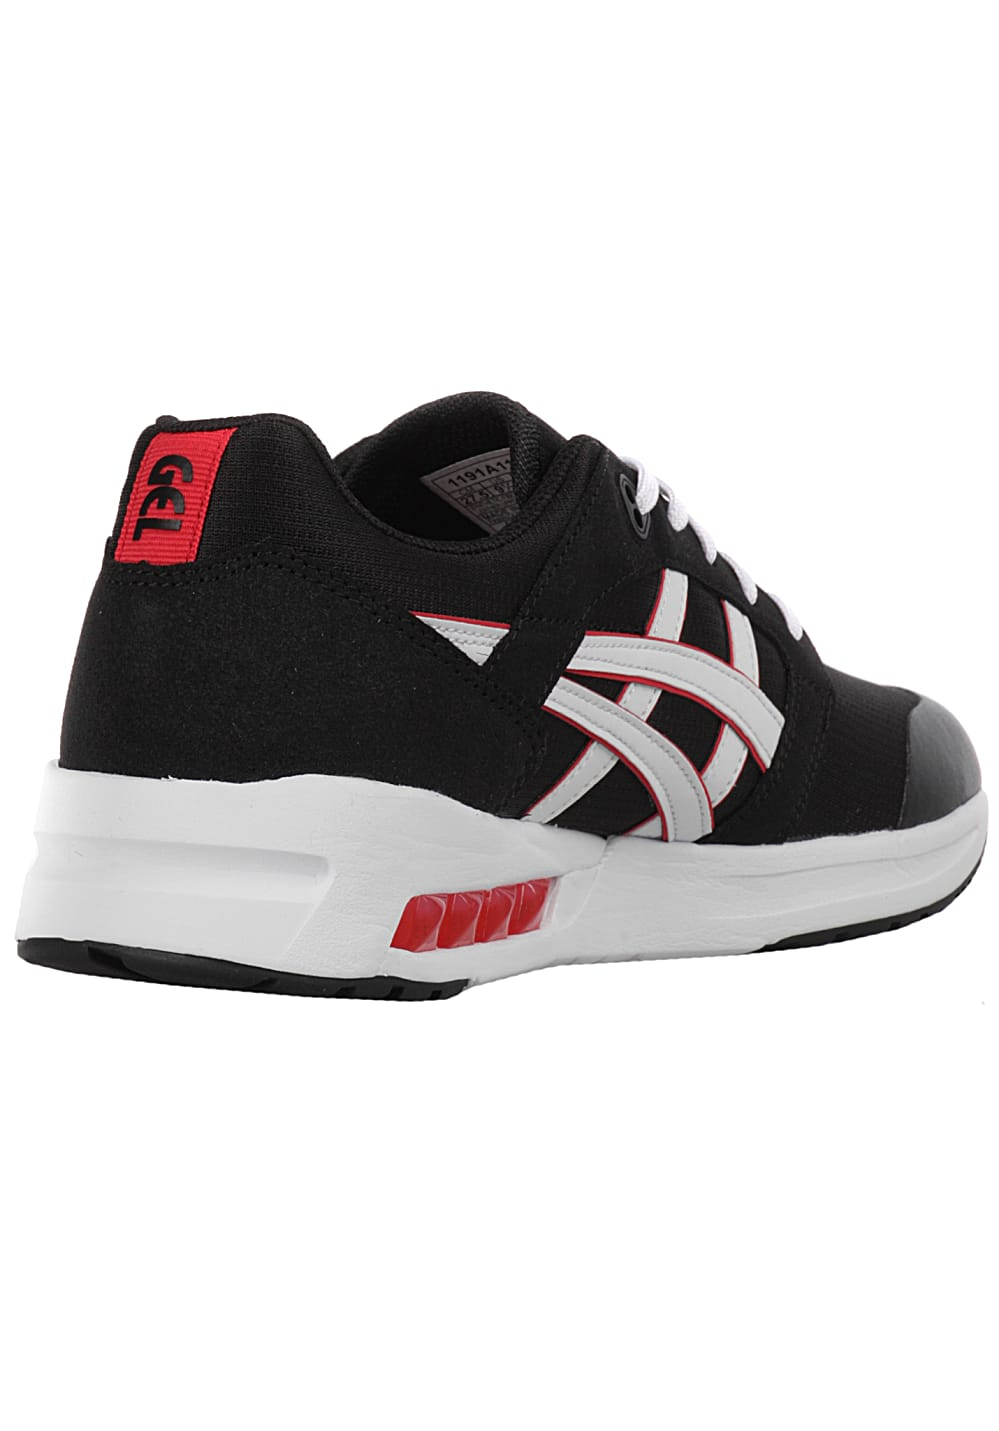 reputable site 515f4 afa3b Asics Tiger Gel Saga Sou - Sneakers for Men - Black